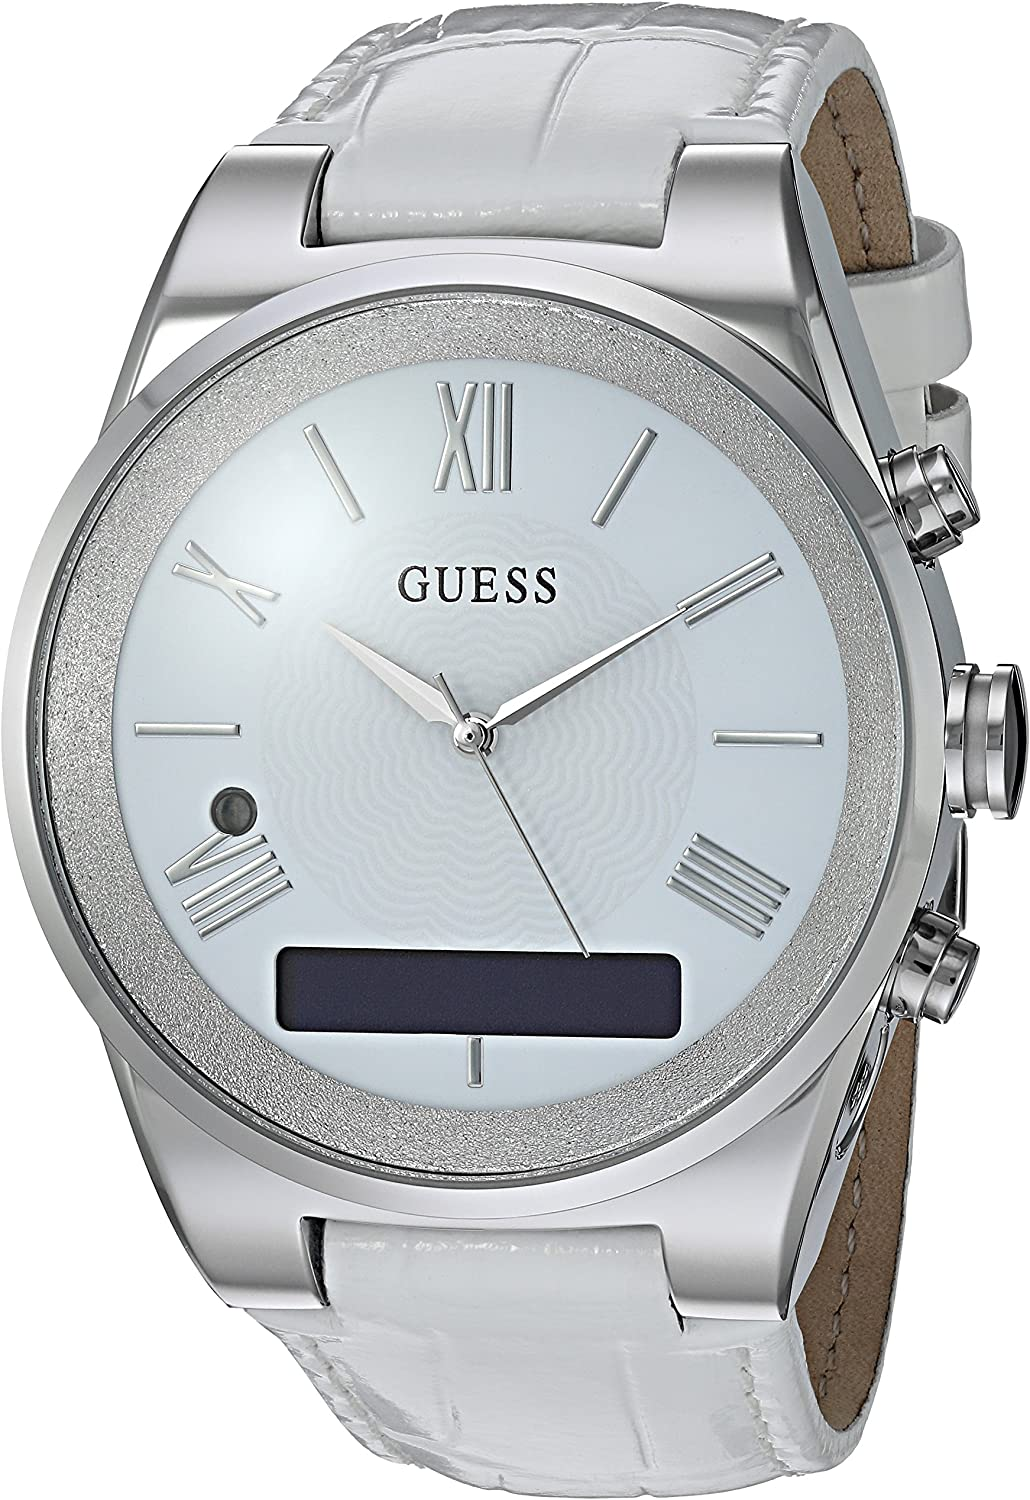 GUESS Womens Stainless Steel Connect Smart Watch - Amazon Alexa, iOS and Android Compatible, Color: Silver (Model: C0002MC1)